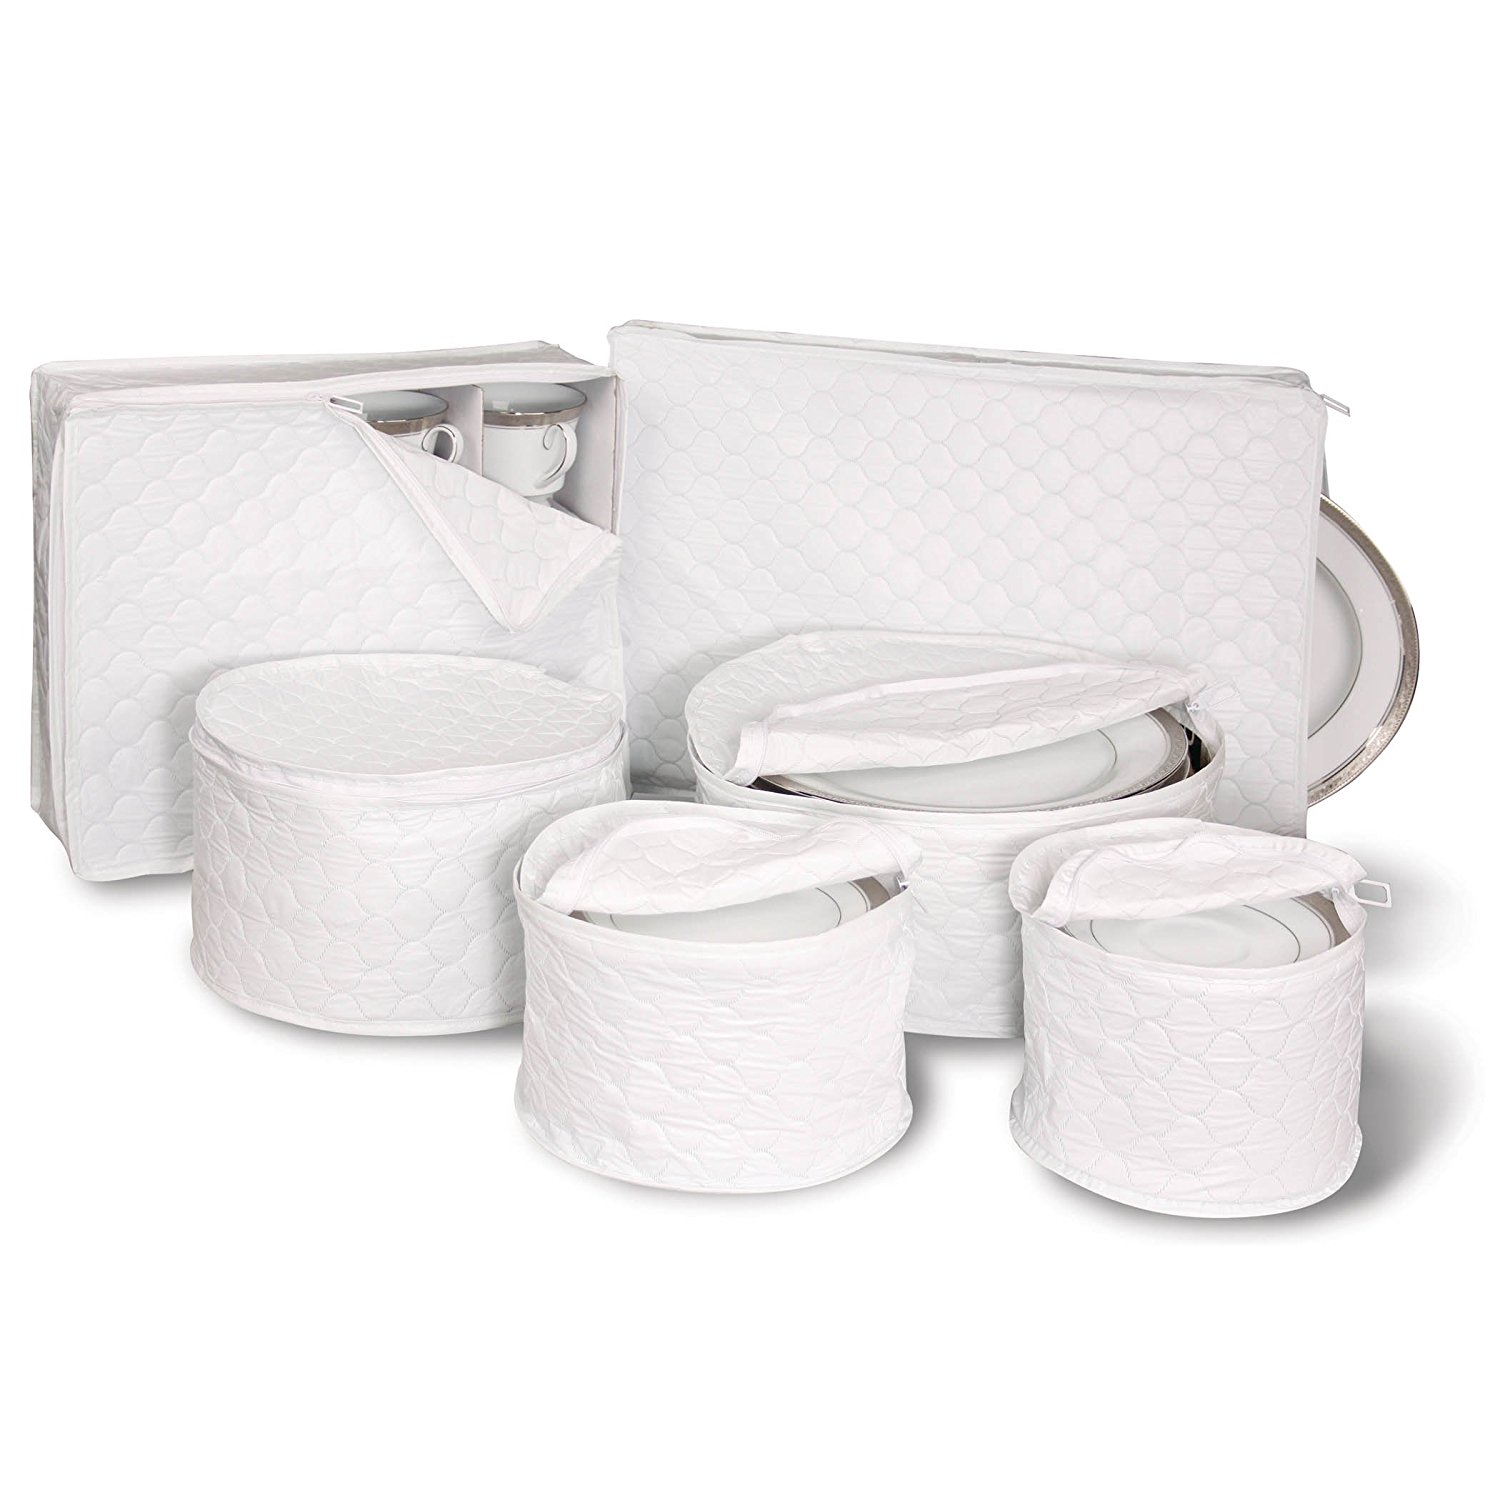 Dinnerware Storage - White 6 Piece Set